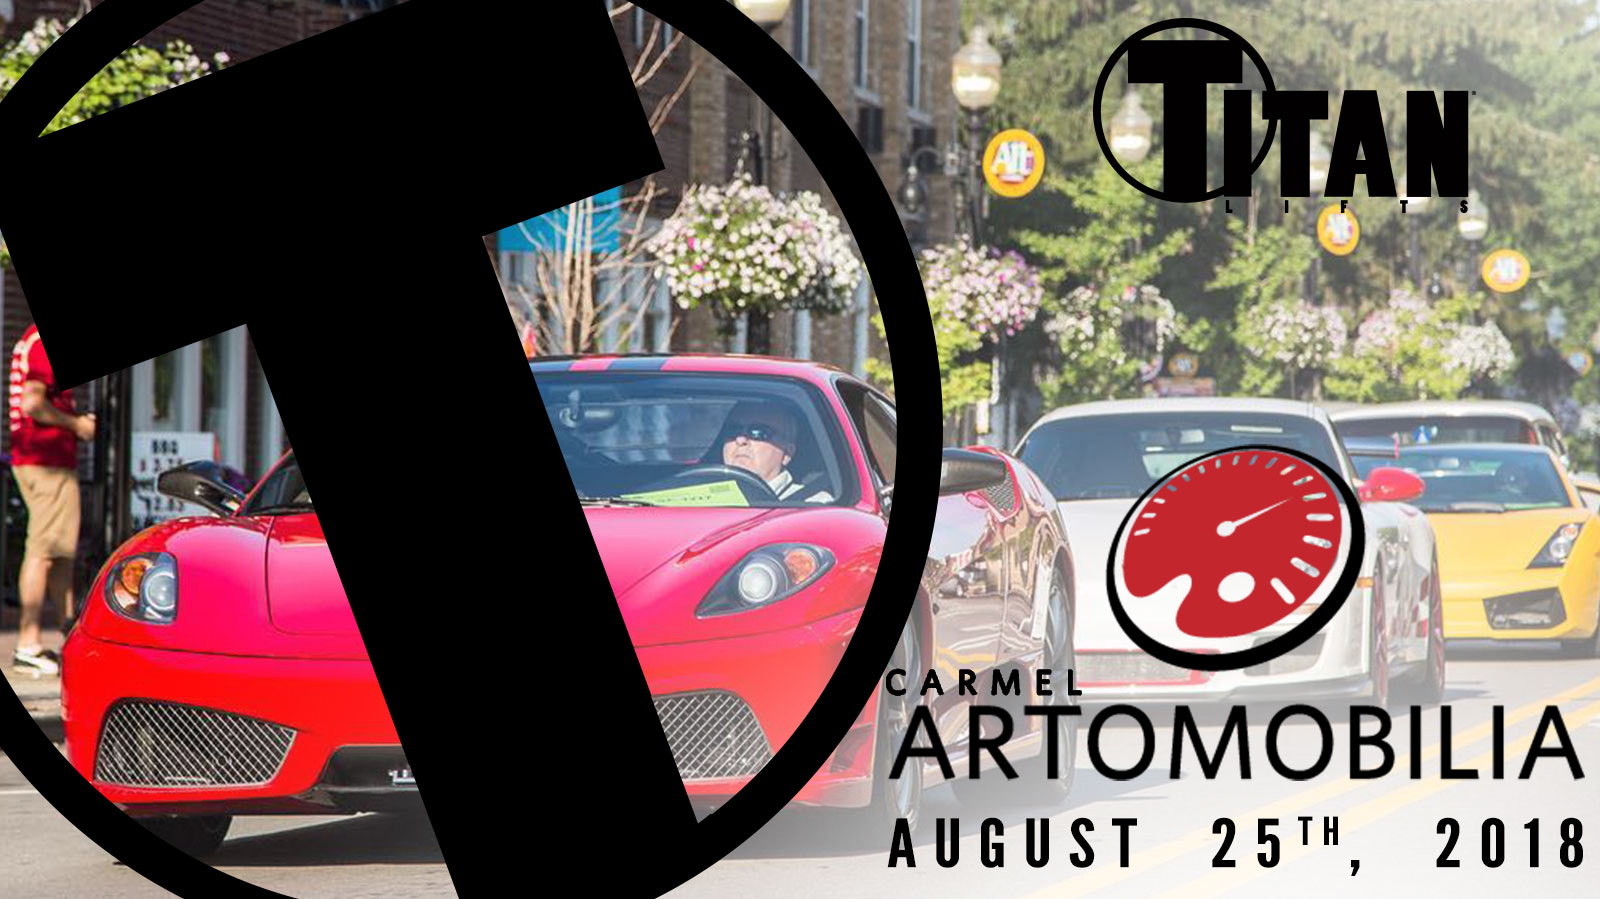 Artomobilia August Th Carmel IN Titan Lifts News - Carmel indiana car show